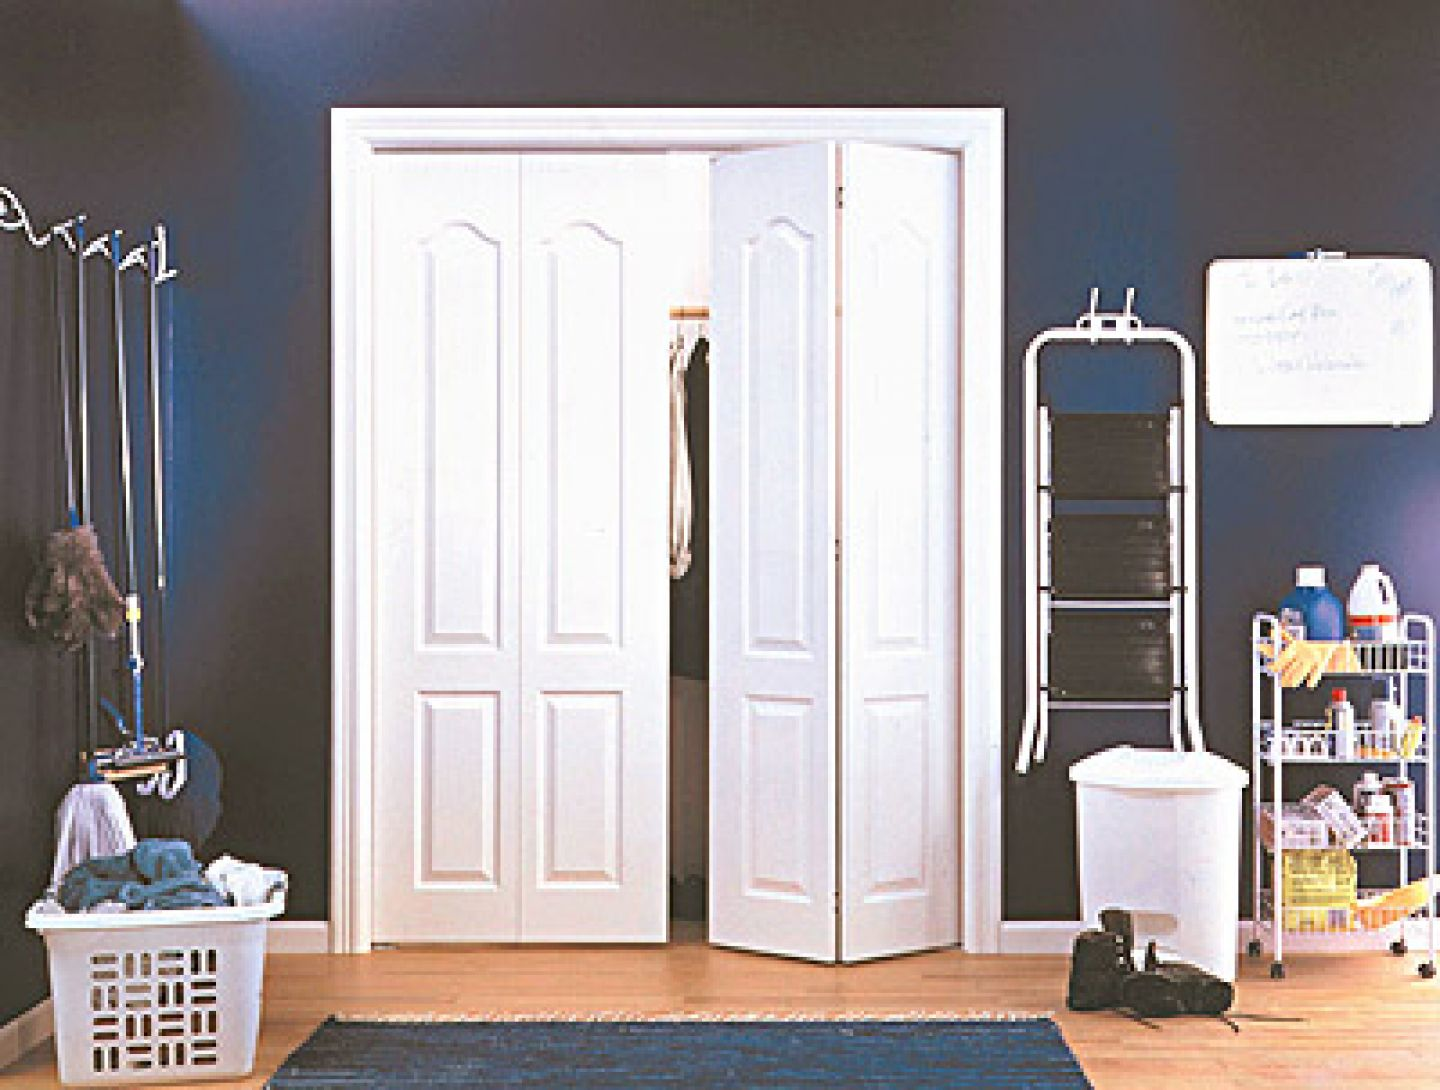 Folded Closet Door Painted In White To Create Black And White Color Scheme  With Wooden Floor